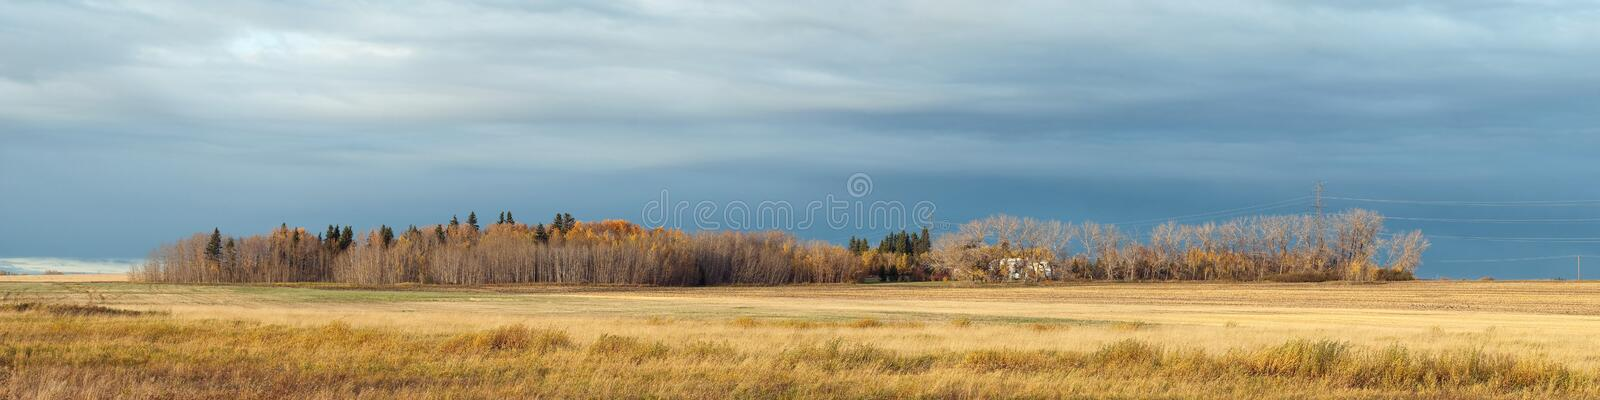 Alberta Farm In The Autumn Royalty Free Stock Photography